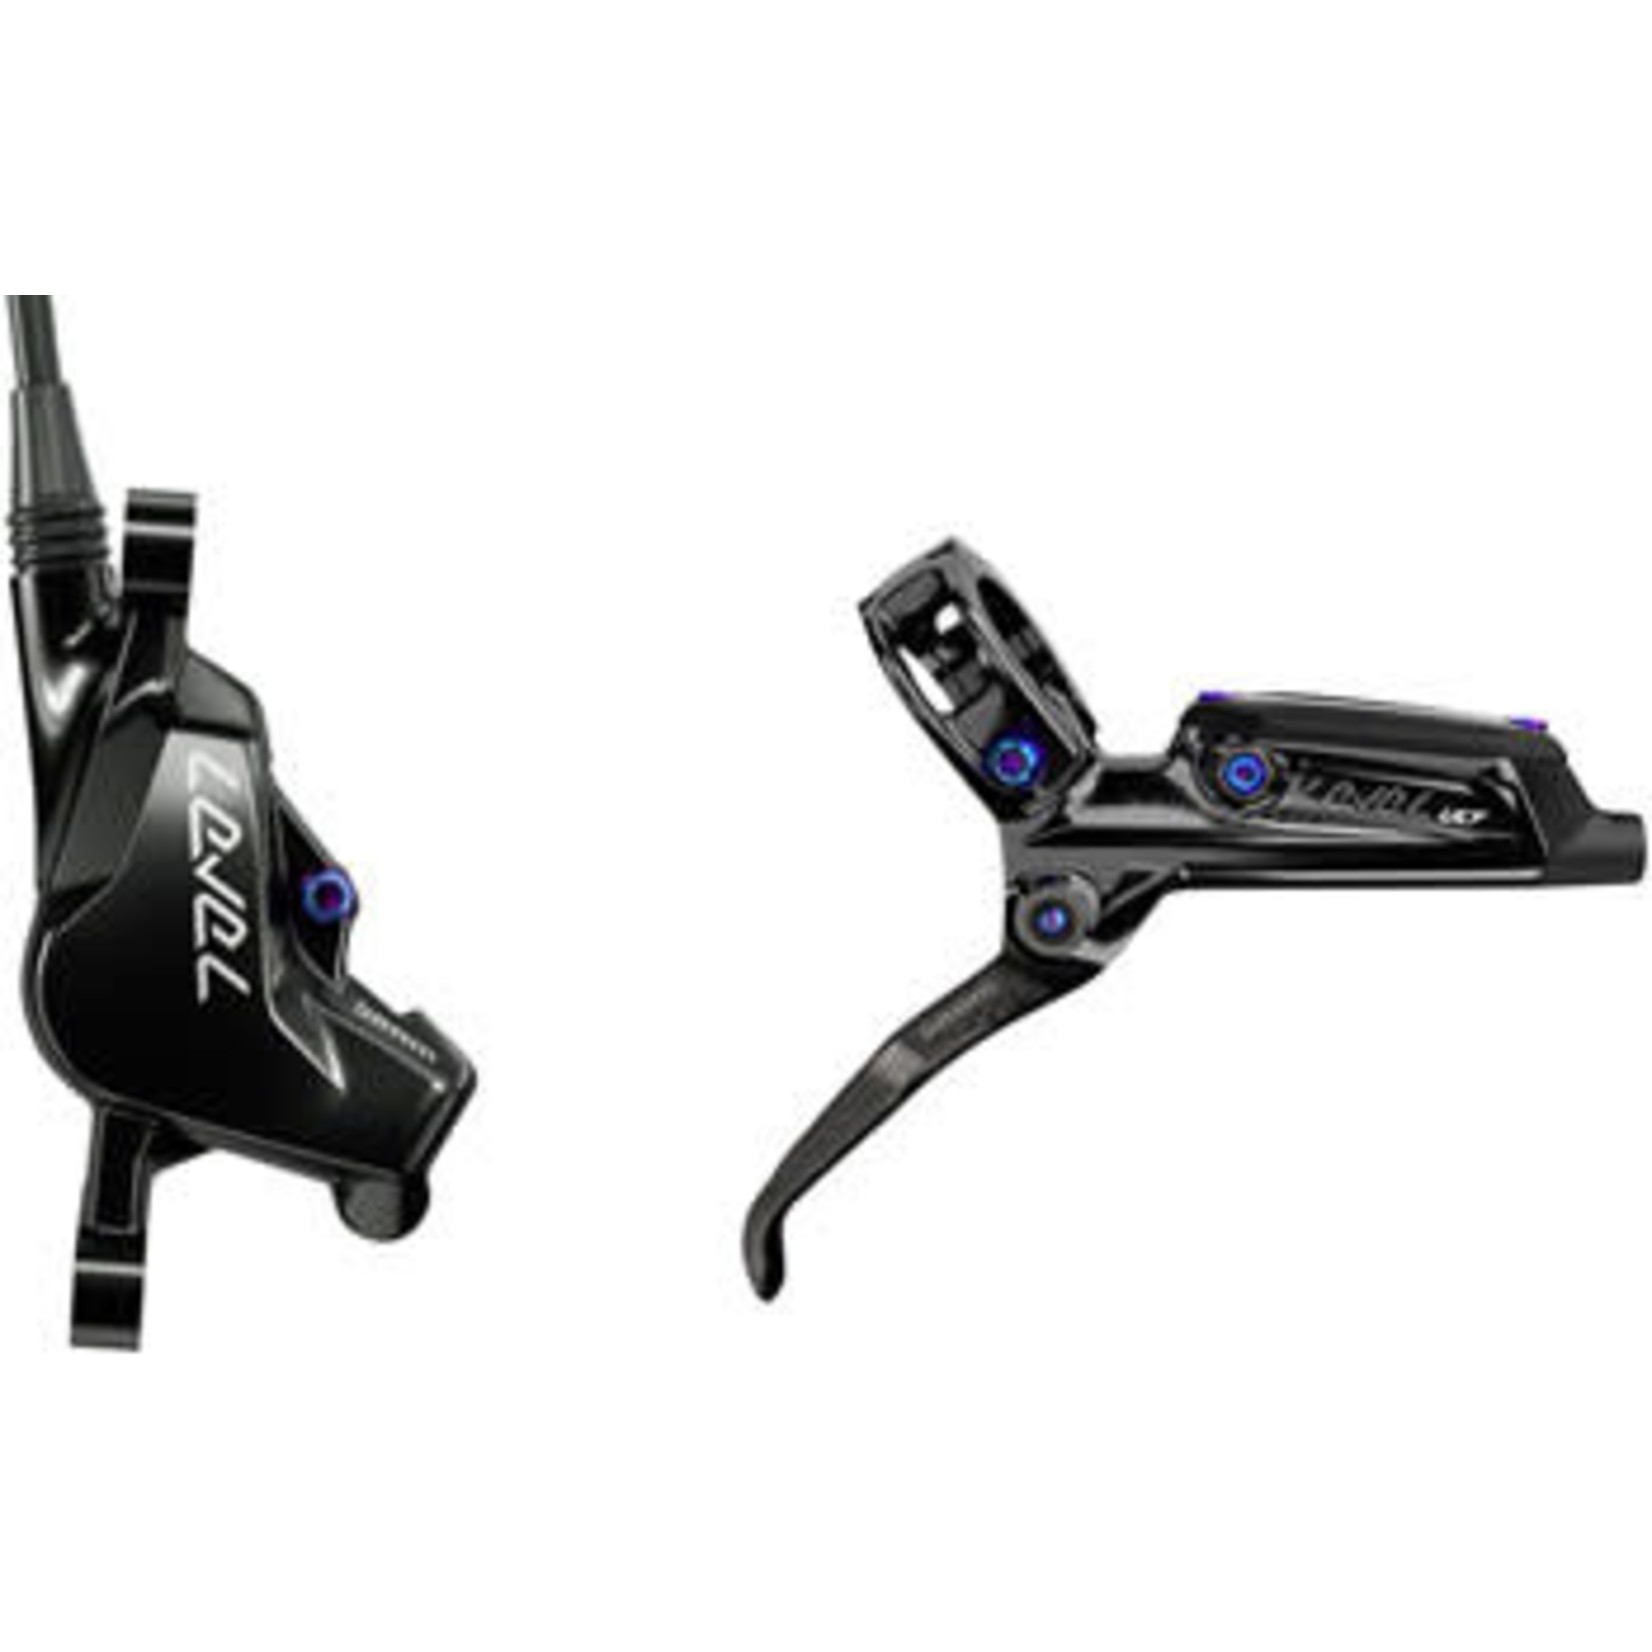 SRAM SRAM Level Ultimate Disc Brake and Lever - Rear, Hydraulic, Post Mount, Black with Rainbow Hardware, B1